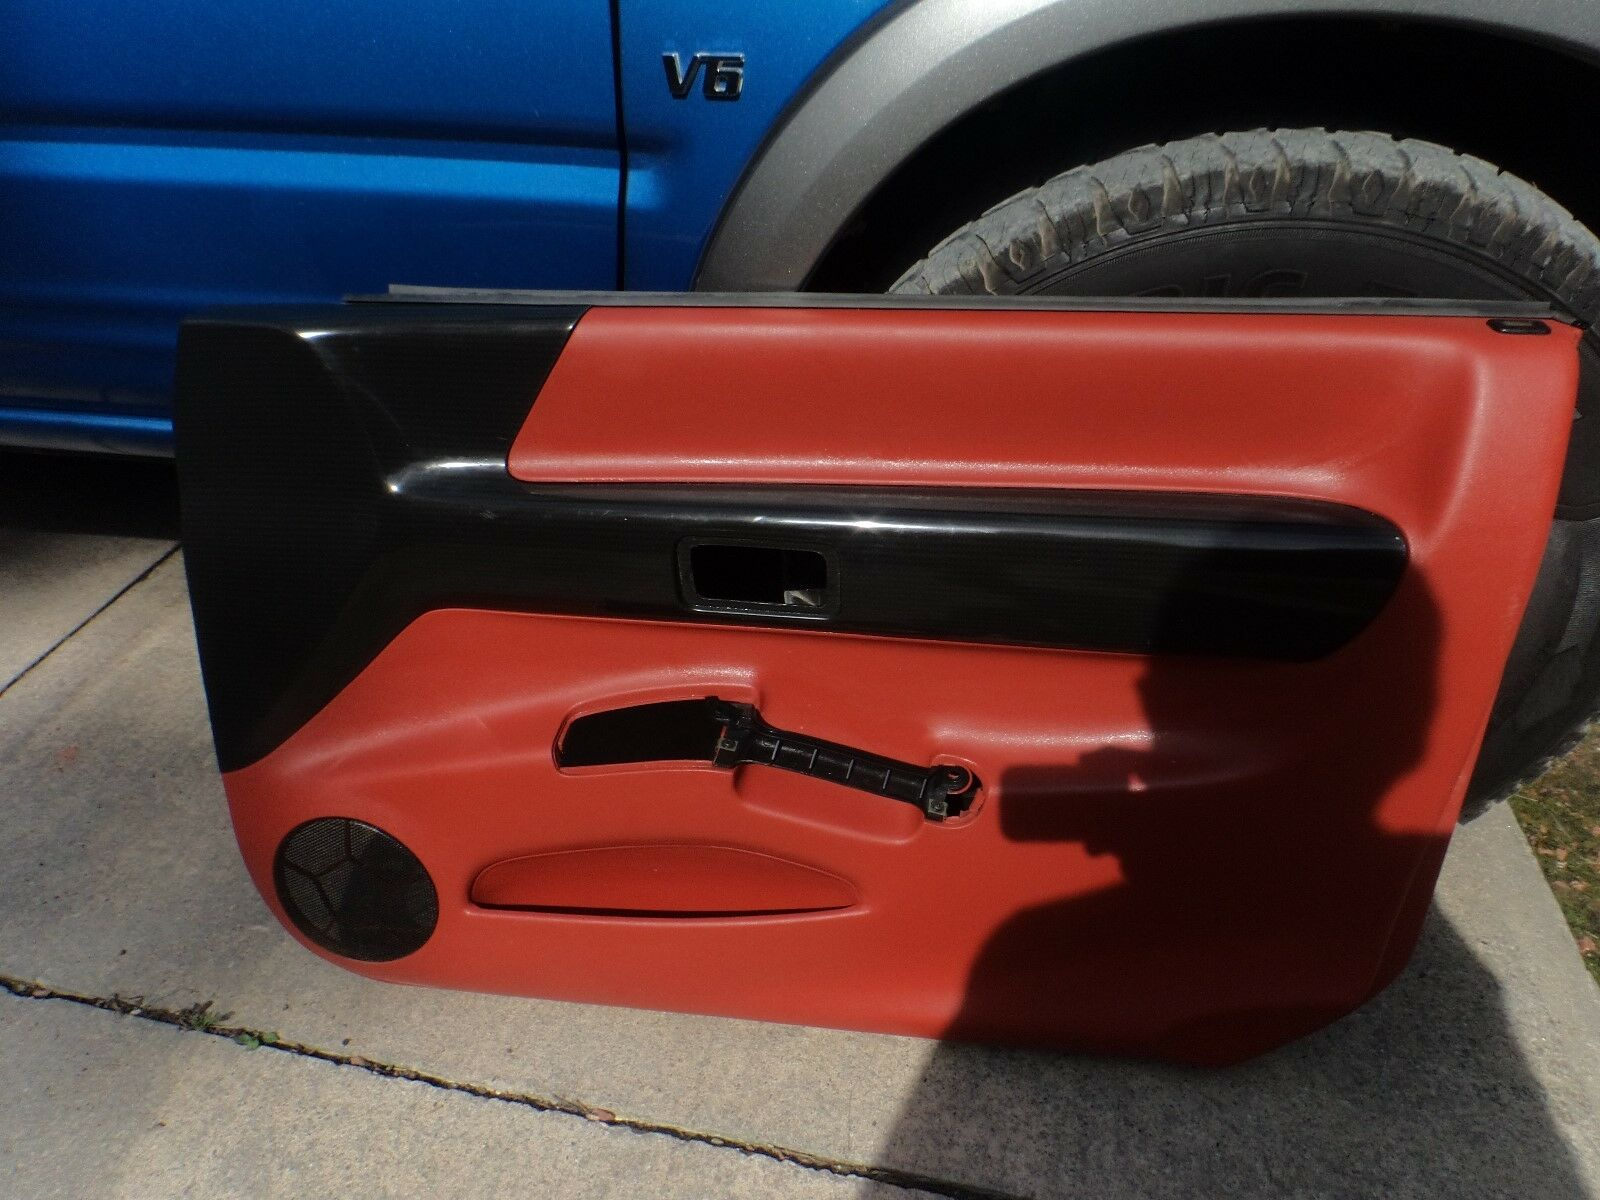 Used Isuzu Interior Door Panels And Parts For Sale Page 3